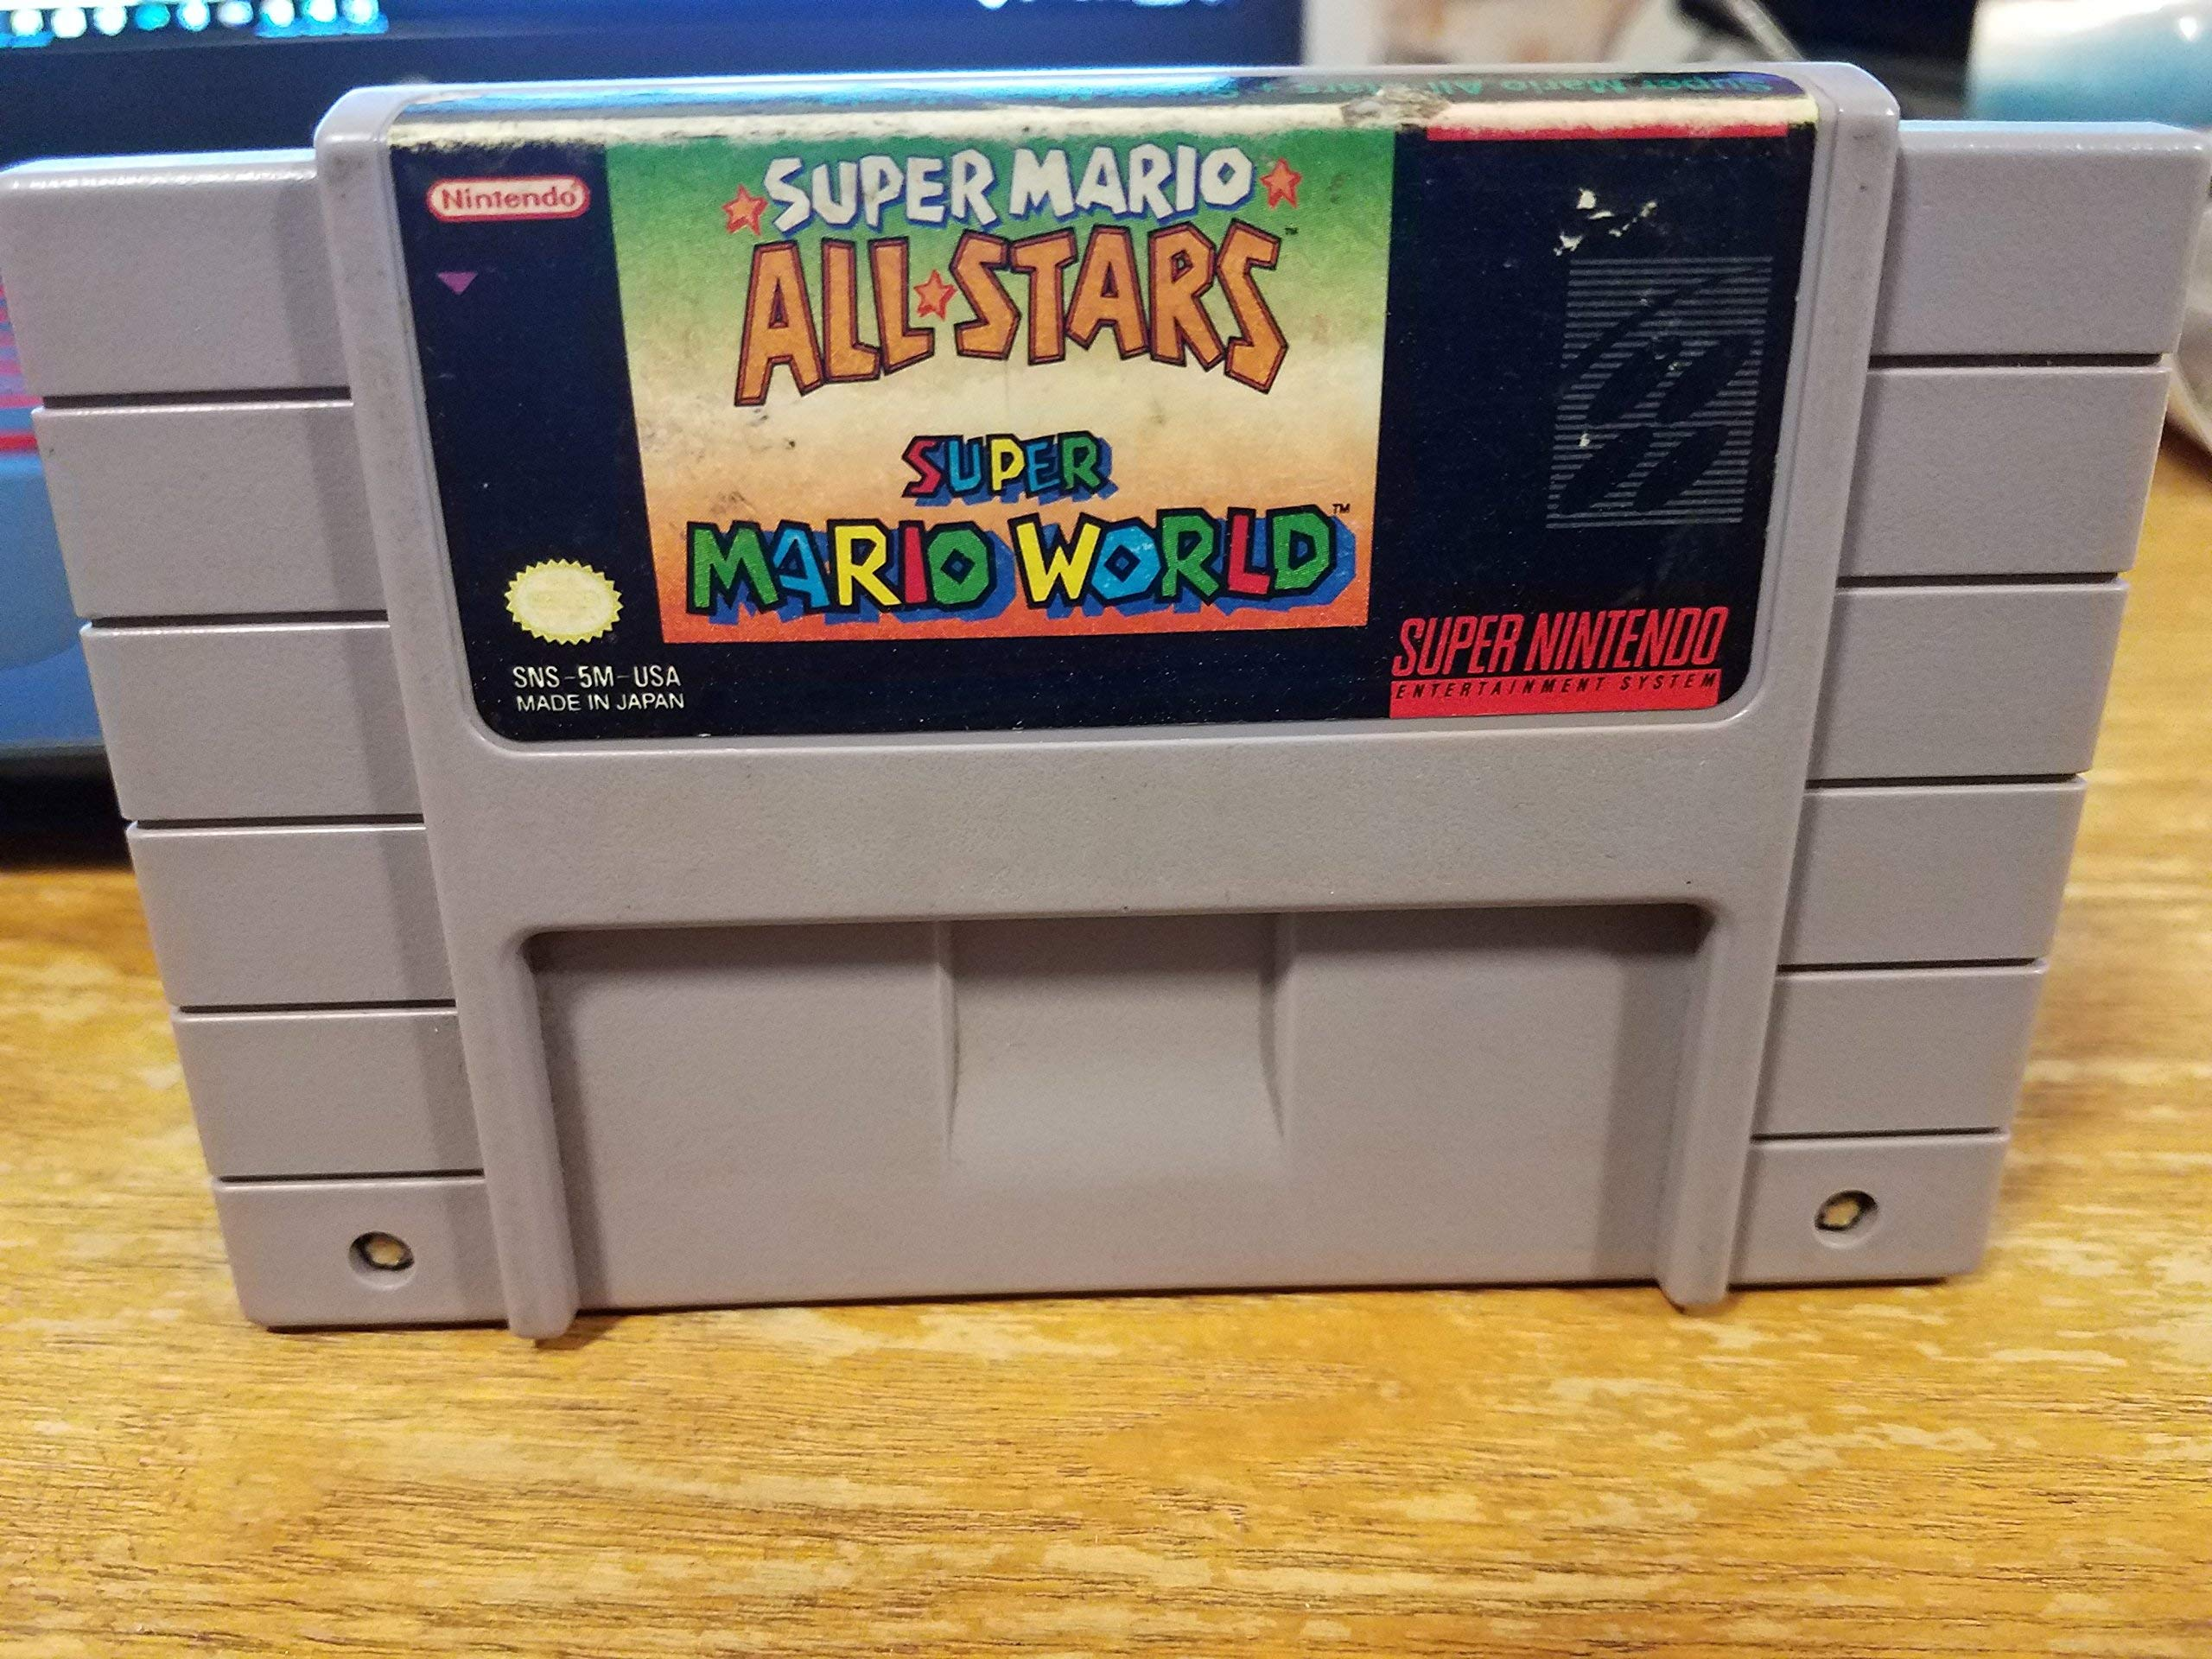 Super Mario All-Stars / Super Mario World (Renewed)